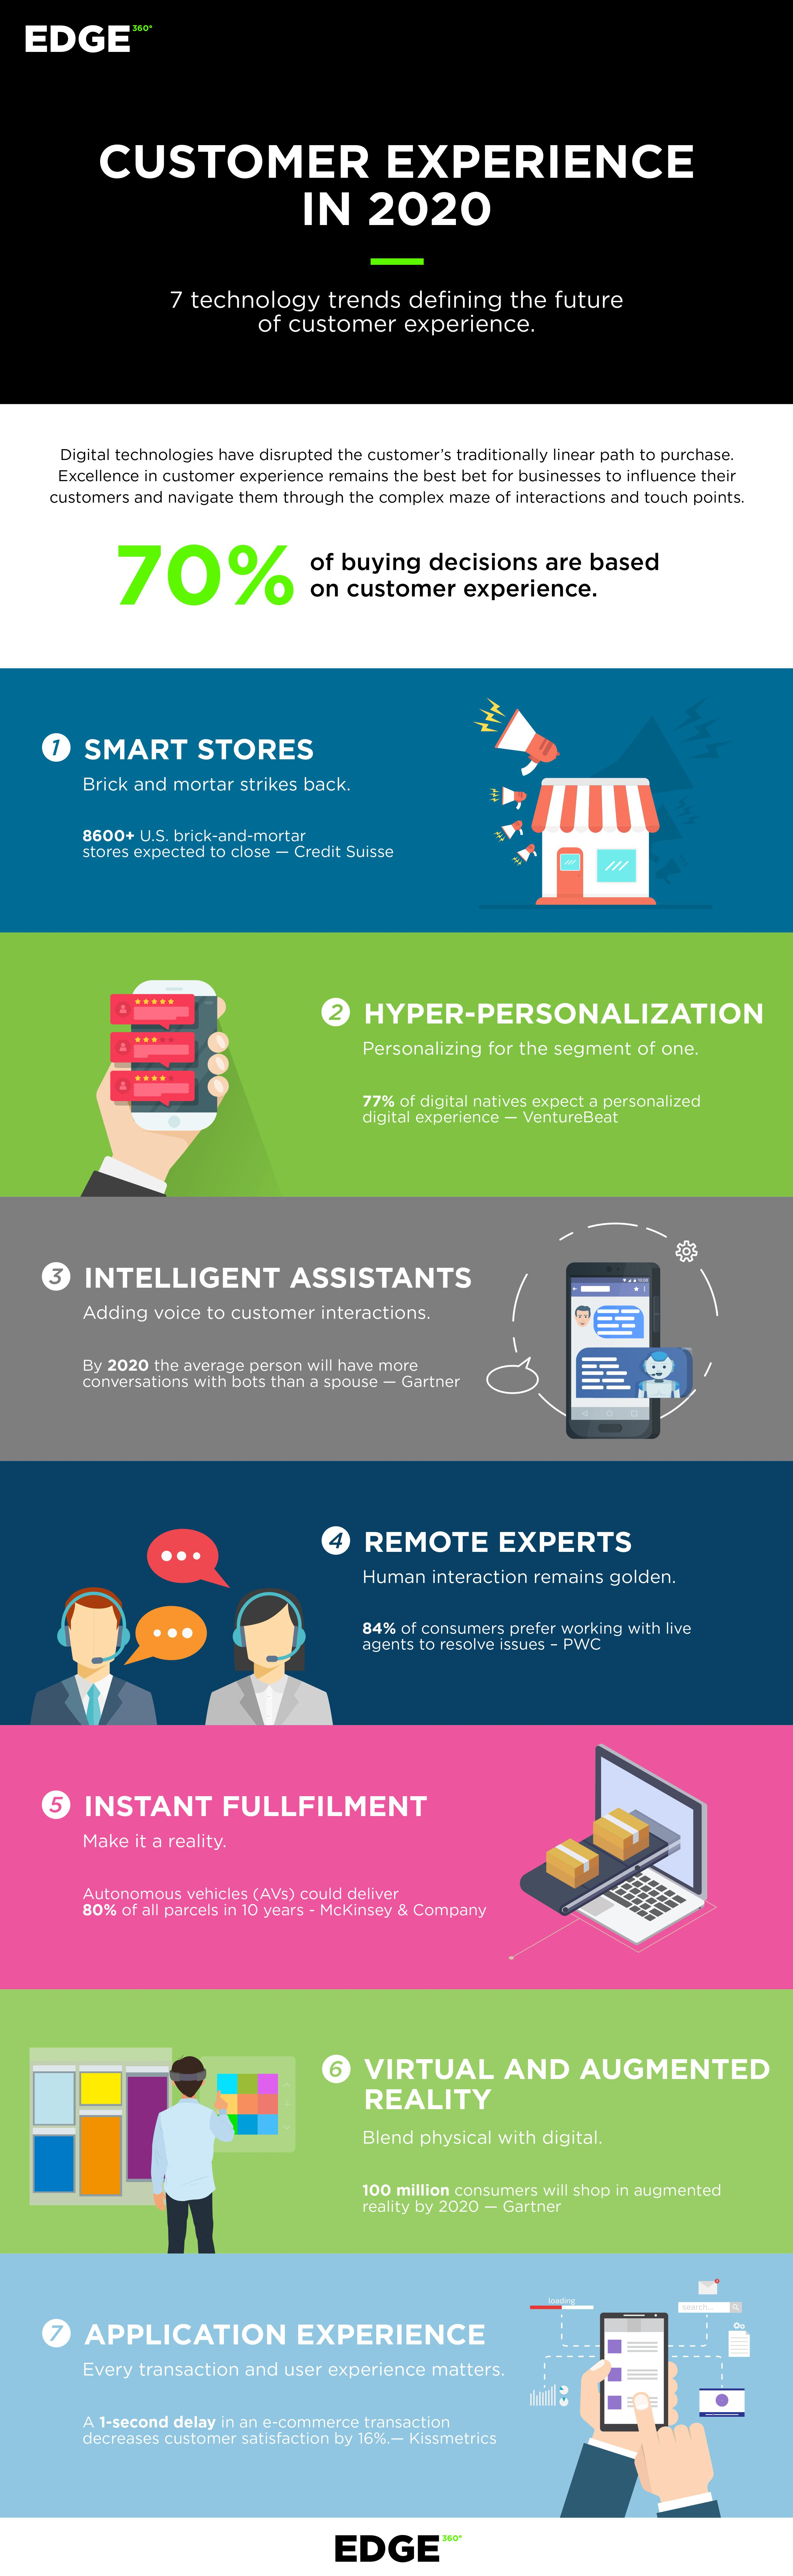 7 Technology Trends Evolving the Customer Experience for